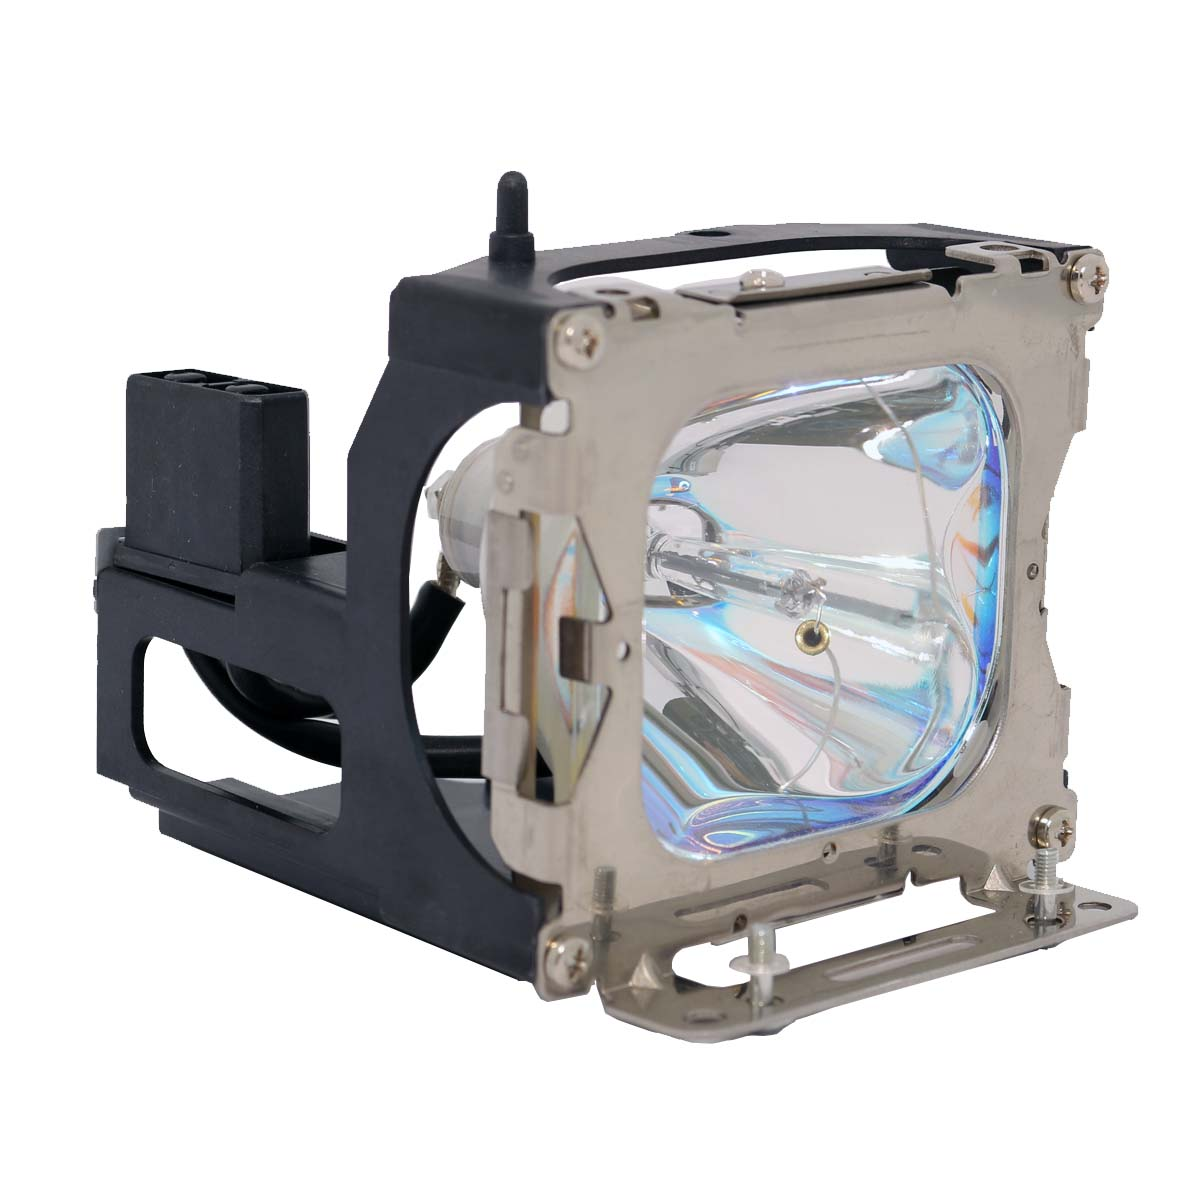 Original Philips Projector Lamp Replacement with Housing for Seleco SLC650X - image 1 de 5